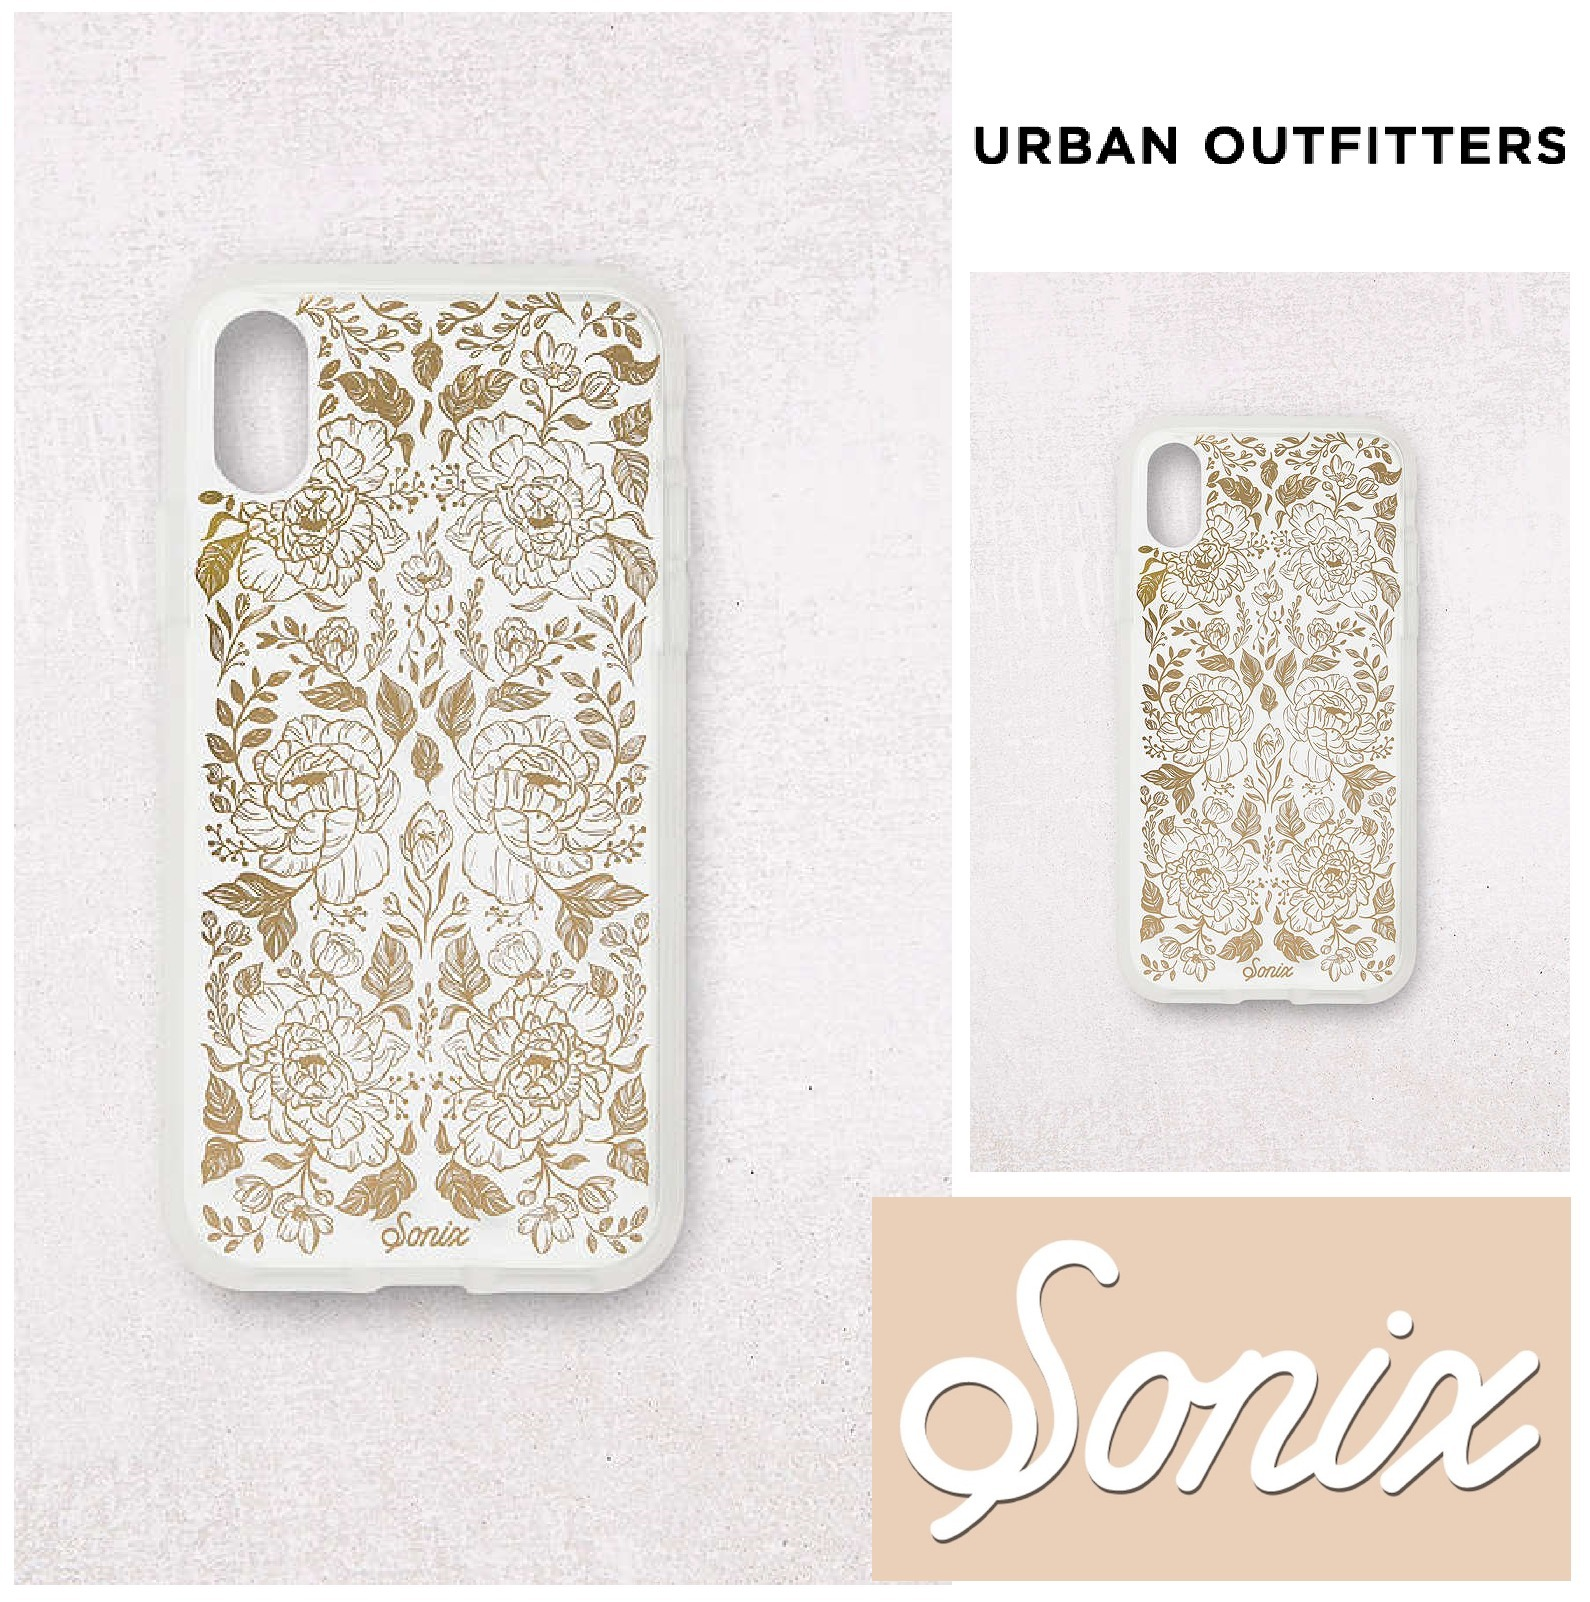 Urban Outfitters☆Sonix Secret Garden iPhone X Case☆